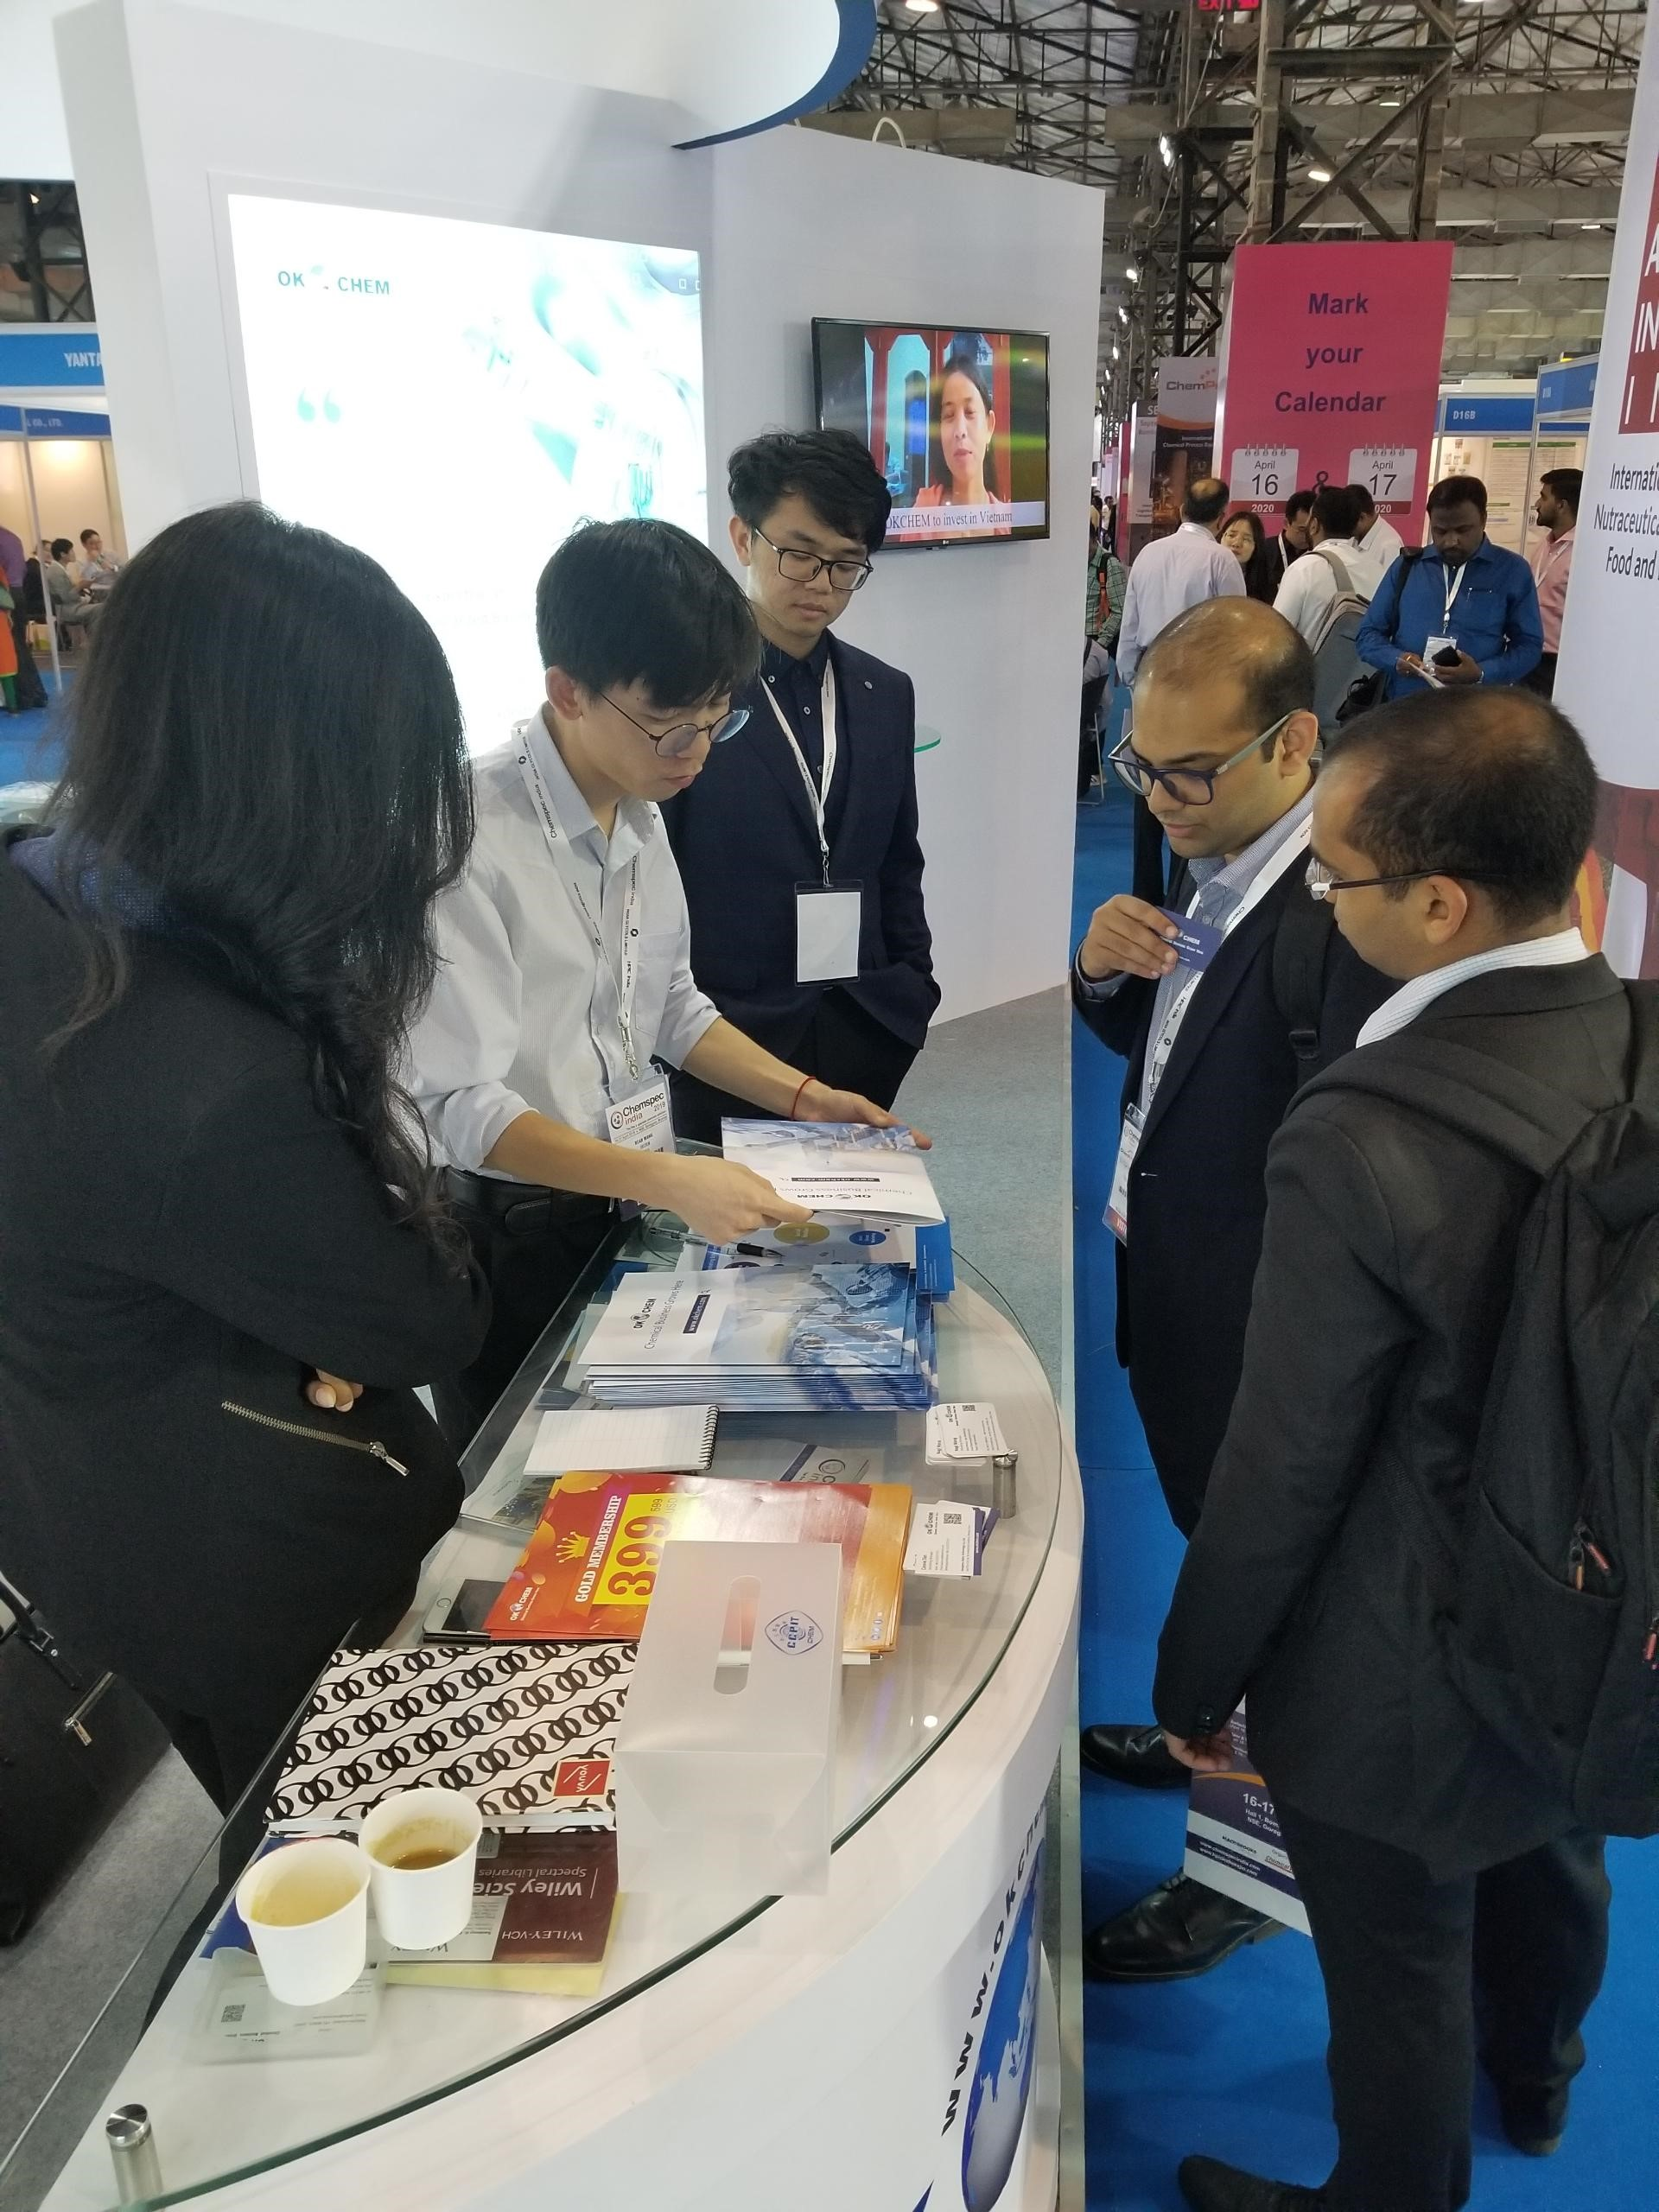 OKCHEM Shone at the ChemSpec India 2019 - OKCHEM - Global